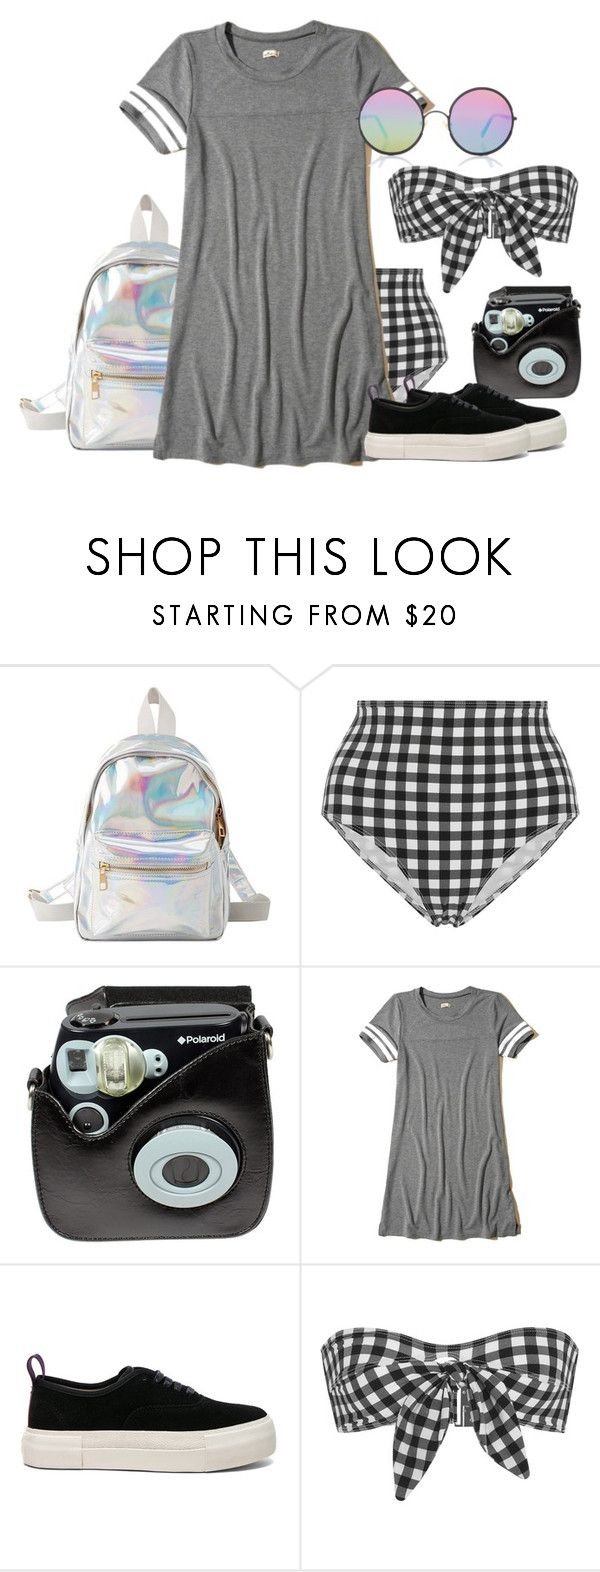 """""""BTS - V's Girlfriend"""" by cfull ❤ liked on Polyvore featuring Charlotte Russe, Ephemera, Polaroid, Hollister Co., Eytys and Sunday Somewhere"""